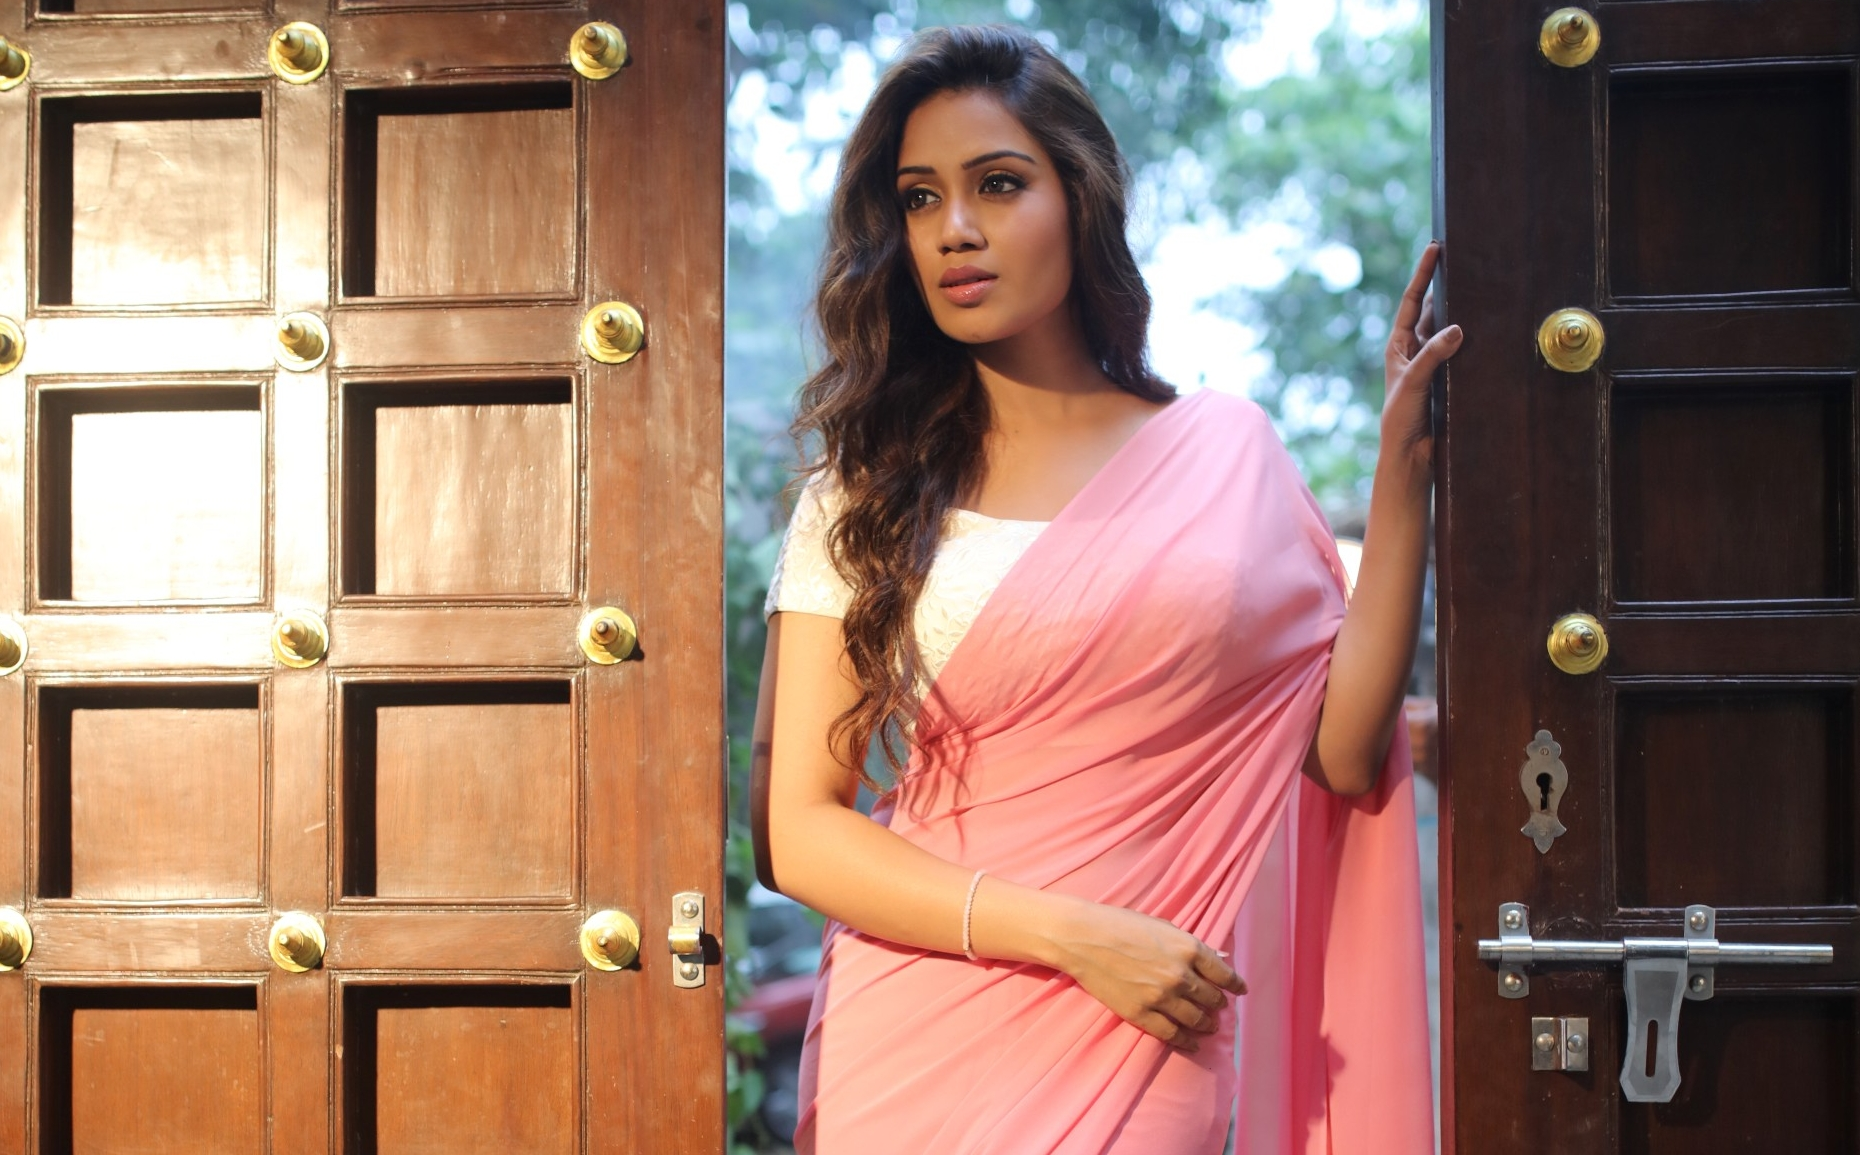 nivetha pethuraj photos stills mobile free wallpaper desktop background